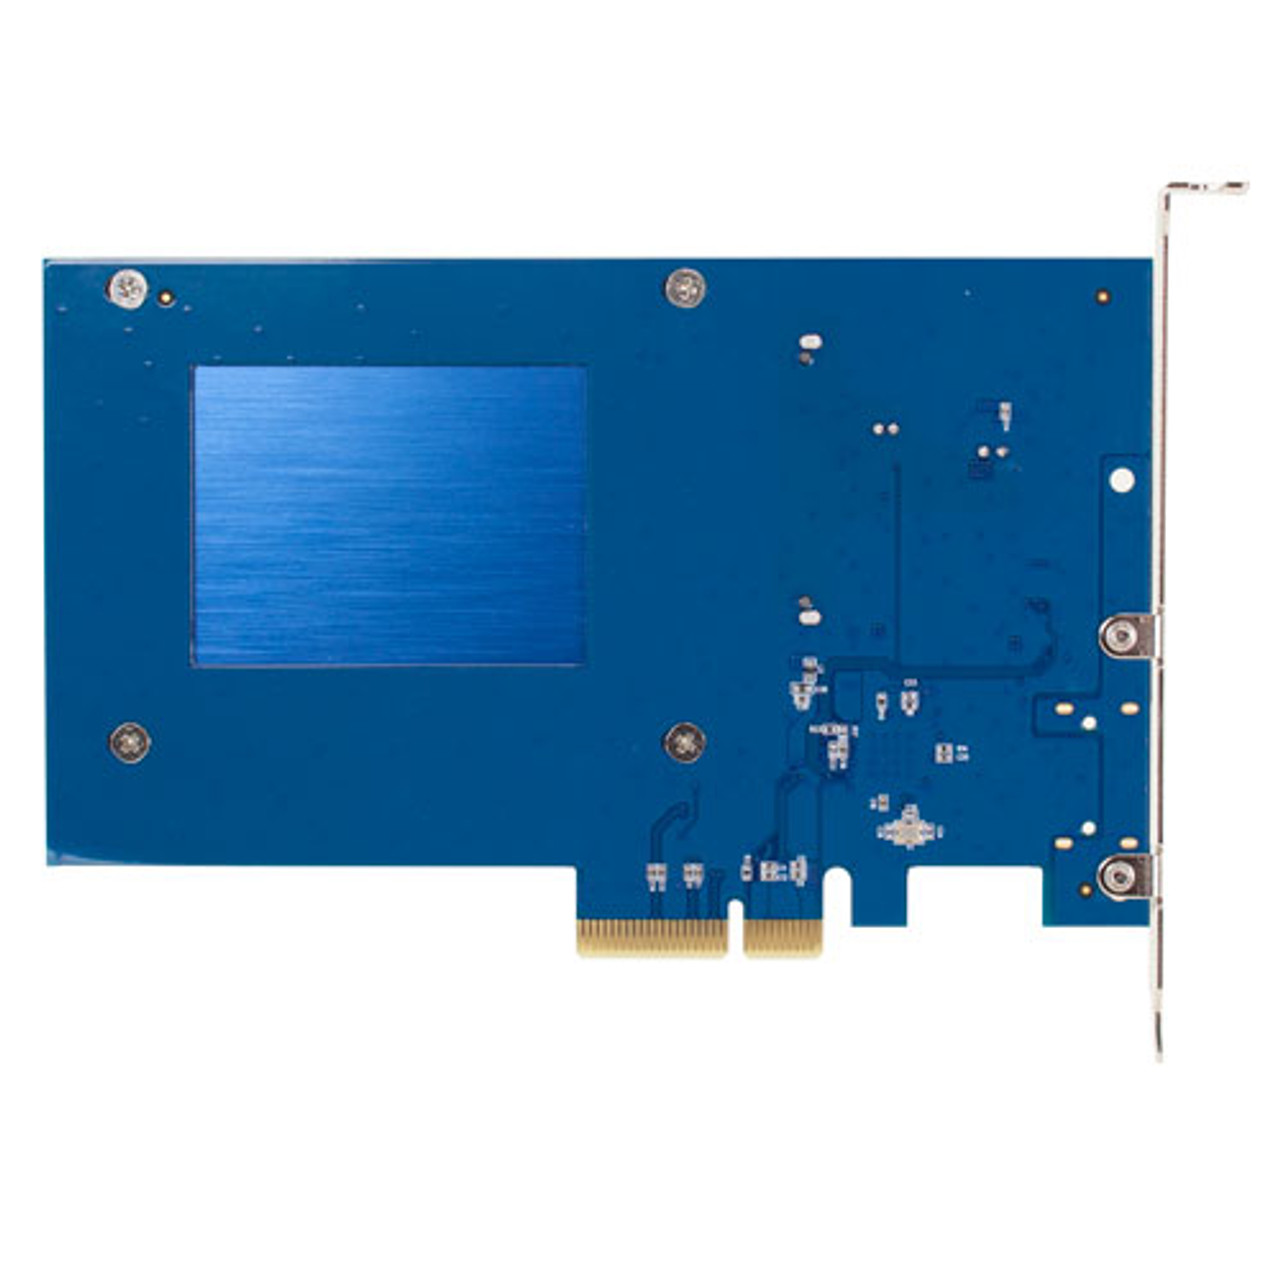 2TB OWC Extreme 6G SSD and OWC Accelsior S PCIe to 2.5-inch adapter bundle